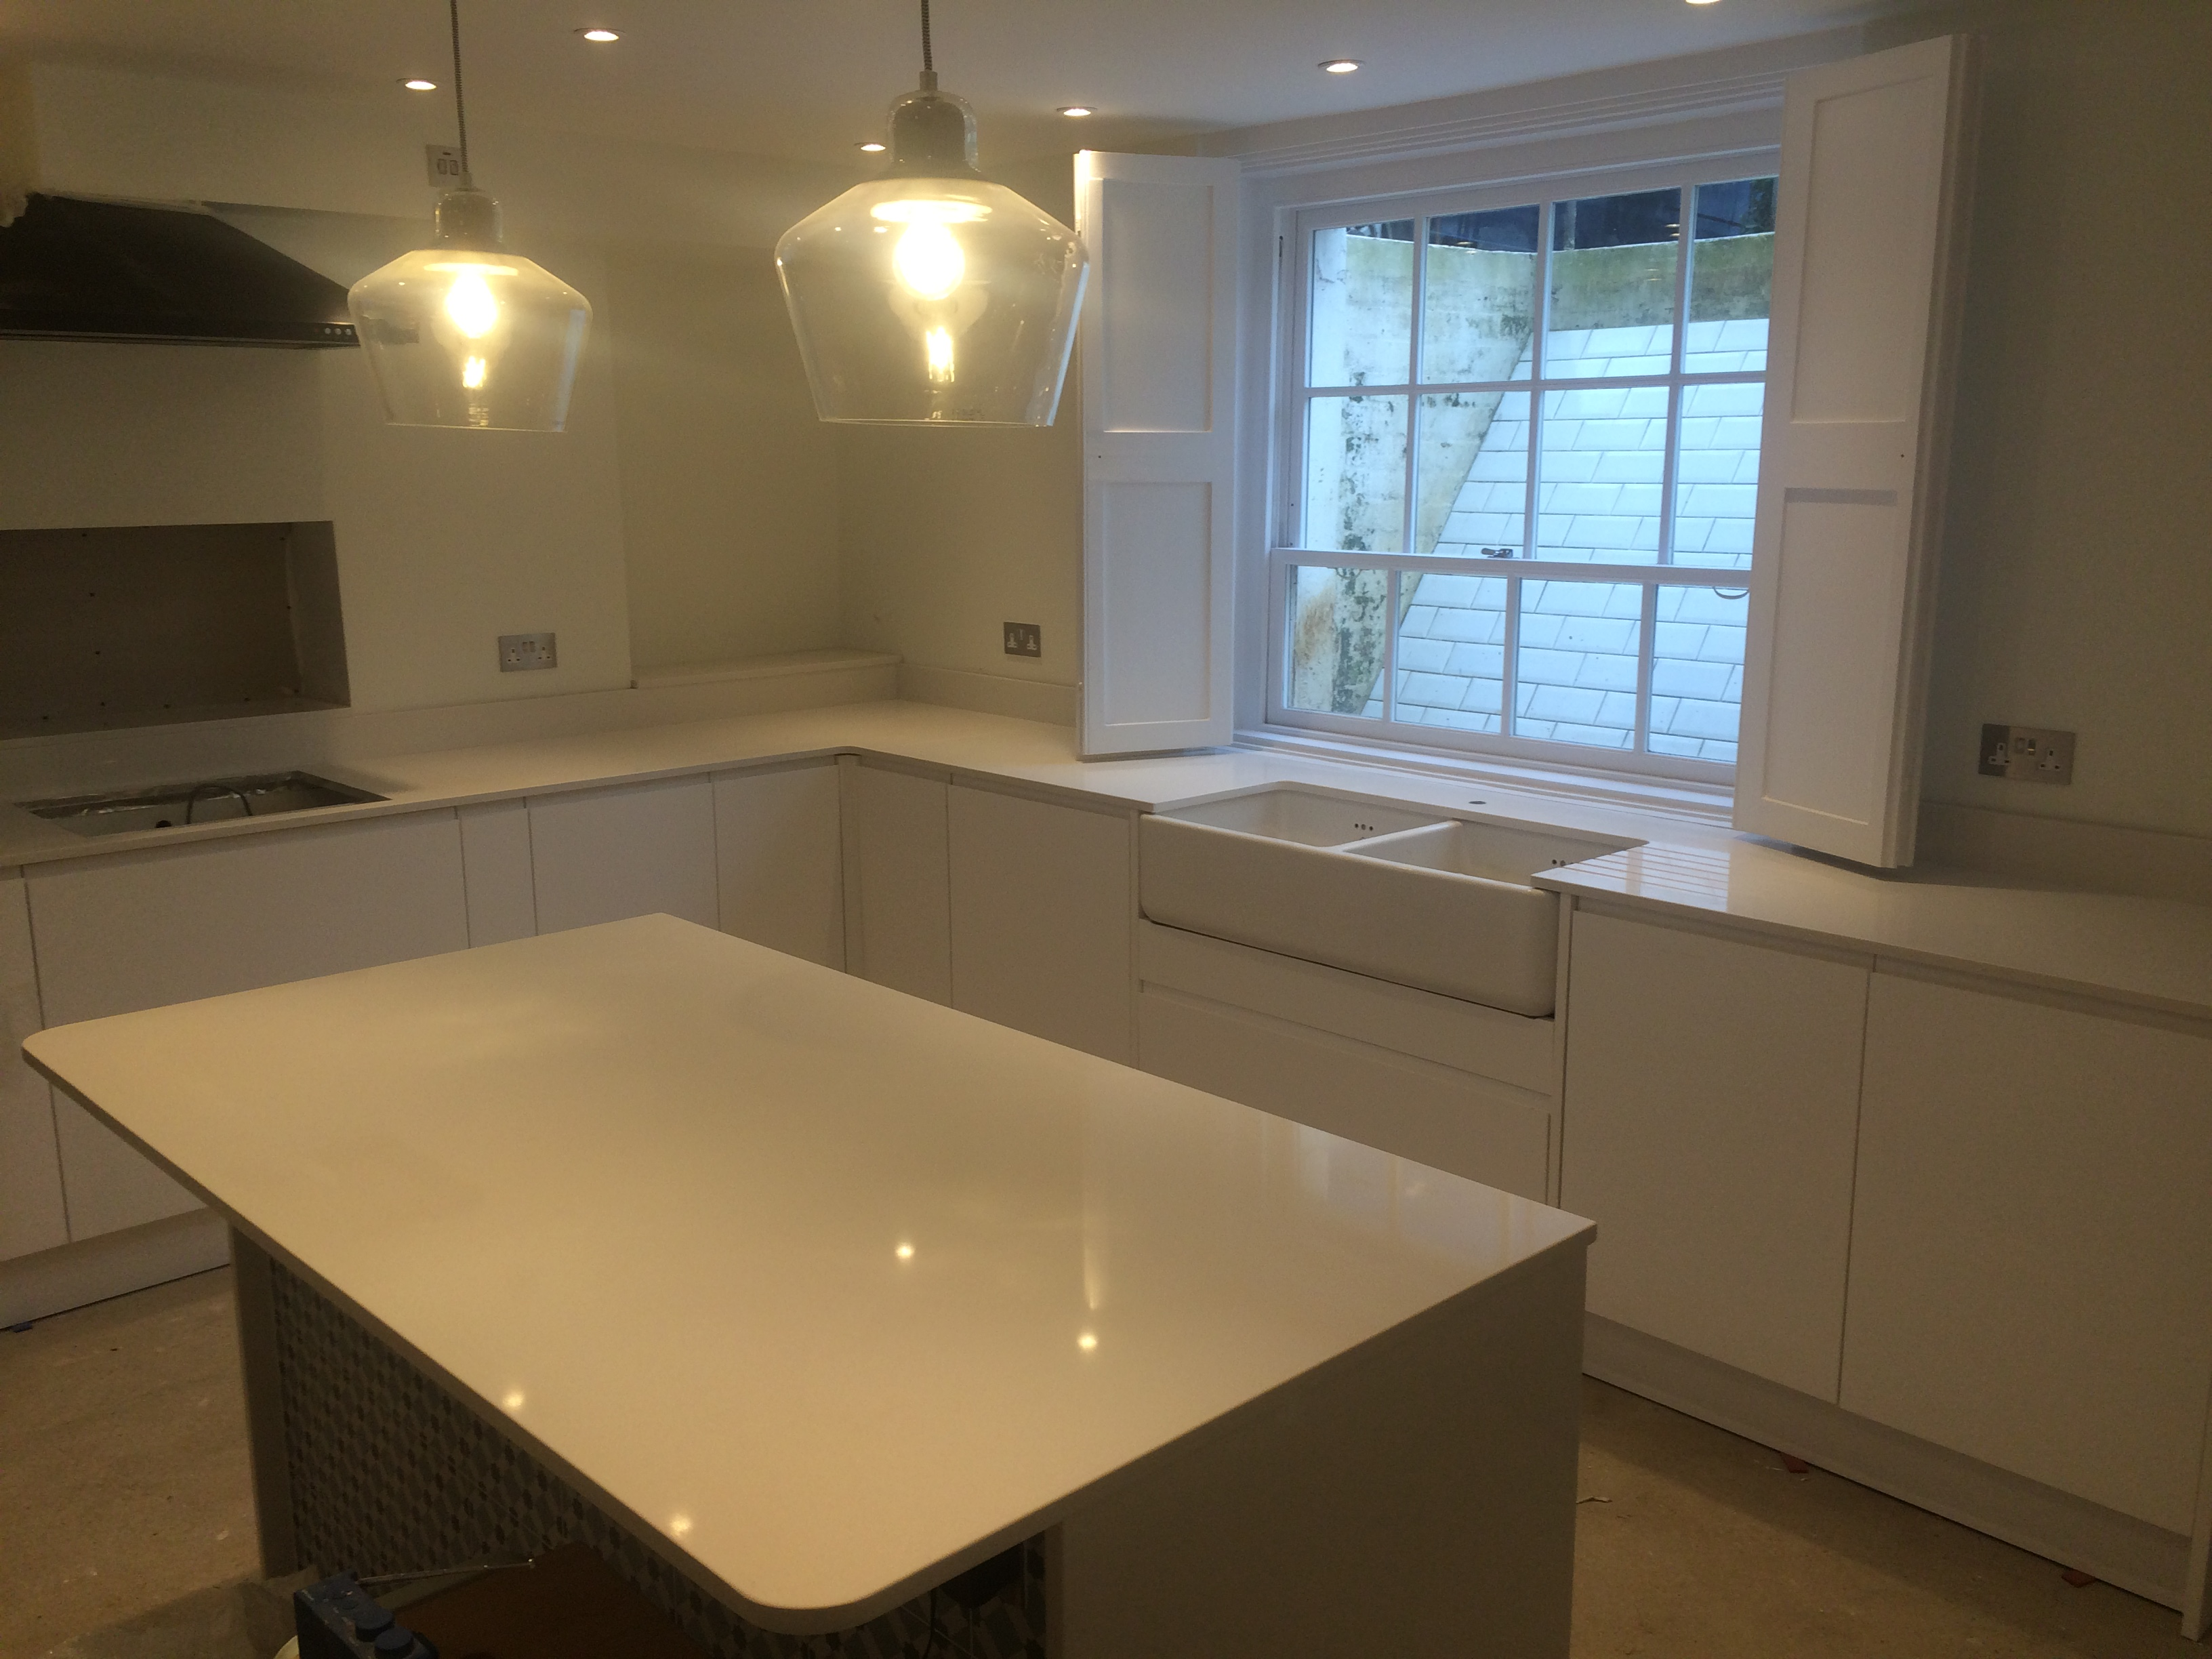 Roktops - Quartz worktop